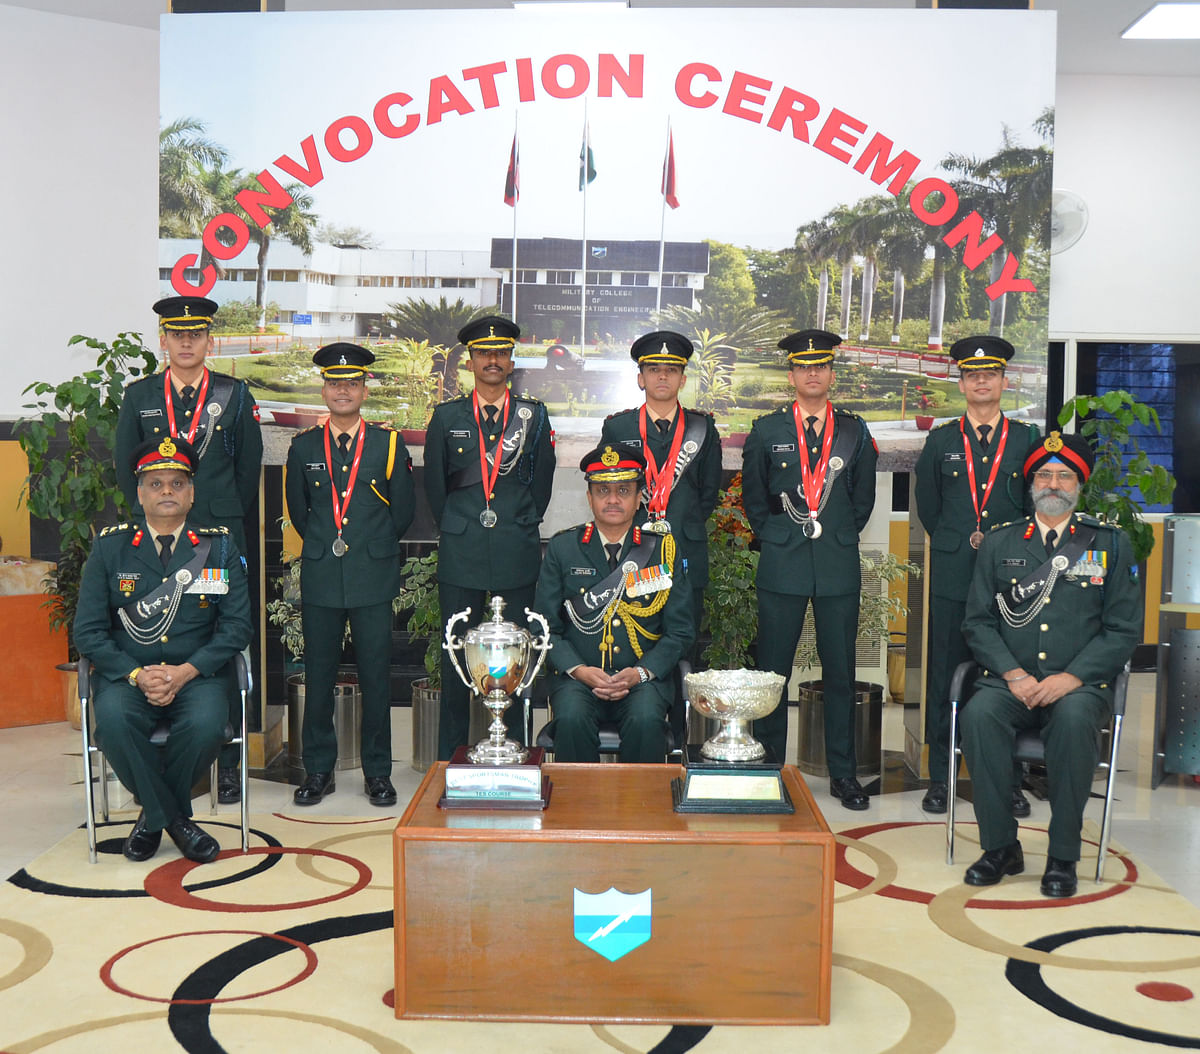 Indore: Convocation ceremony held at MCTE in Mhow on Dec 5